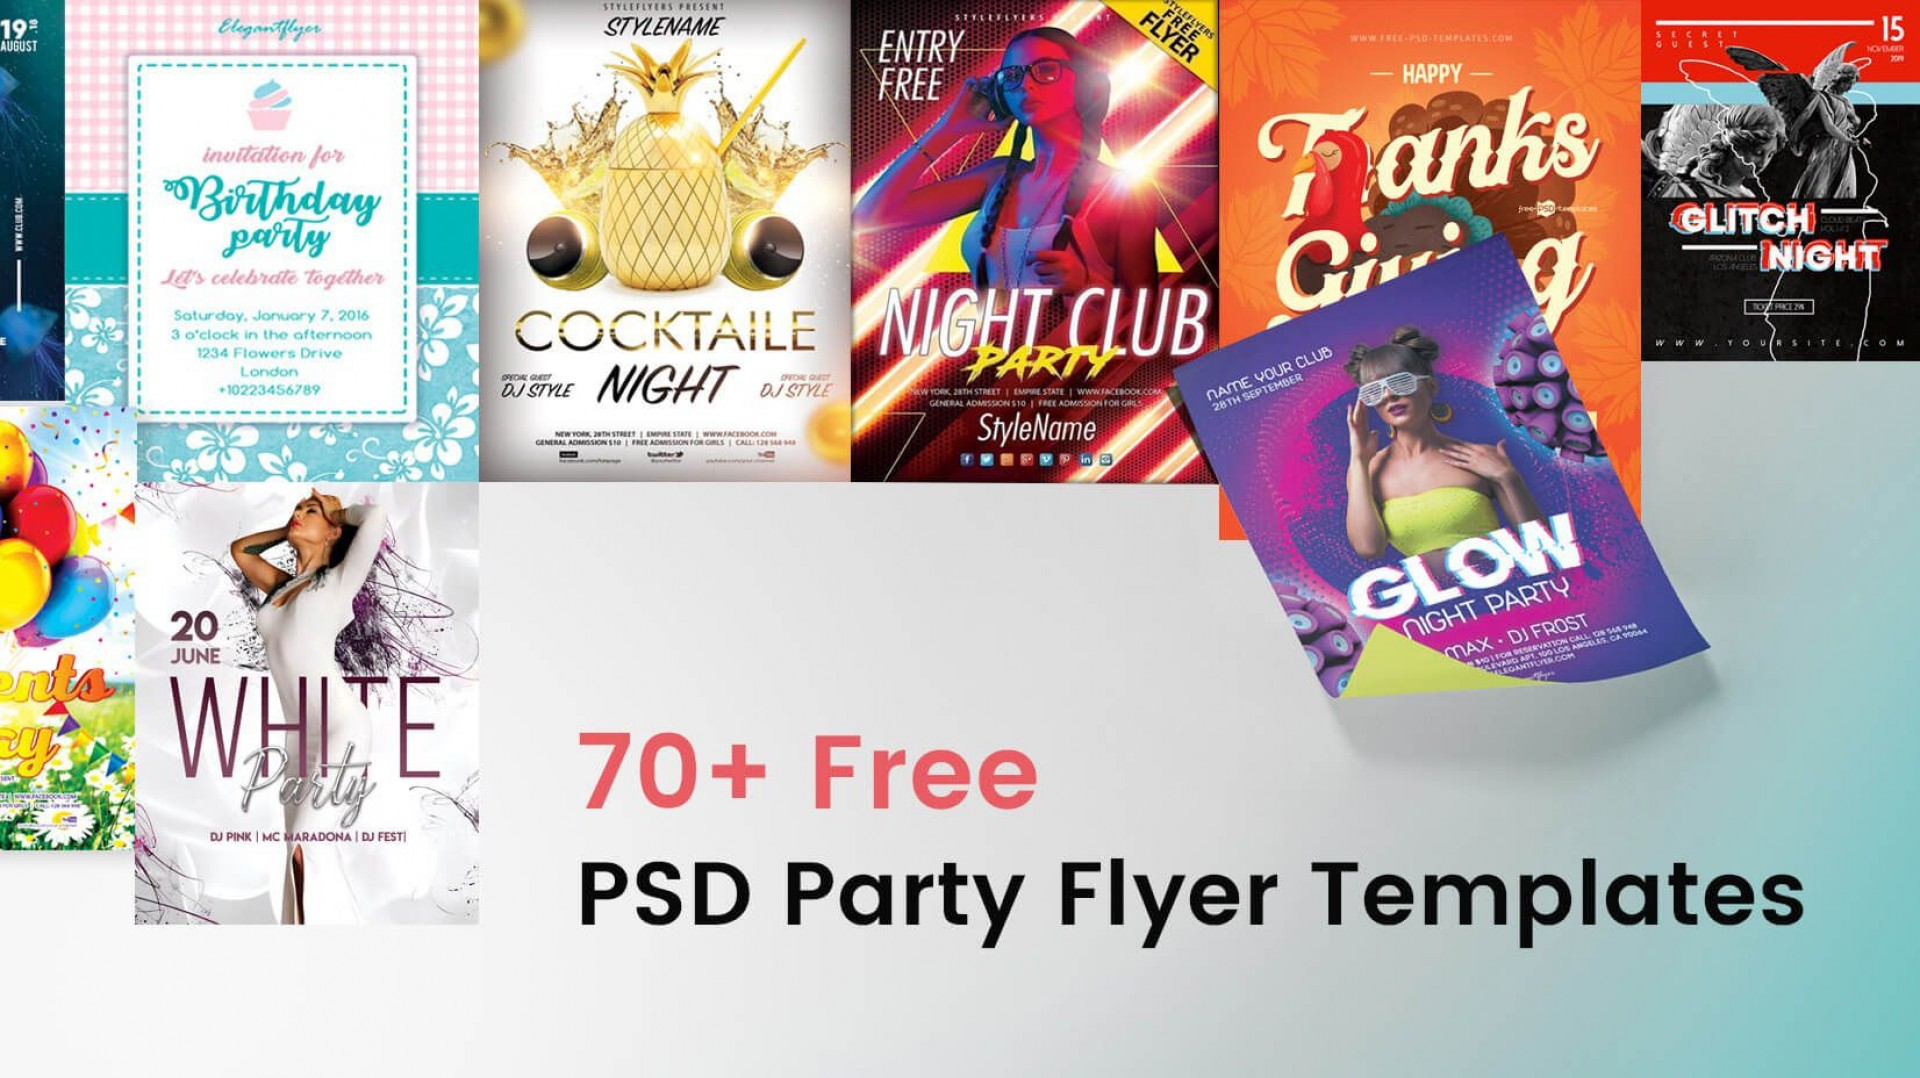 006 Striking Free Psd Party Flyer Template Download Highest Clarity  - Neon Glow Rave1920